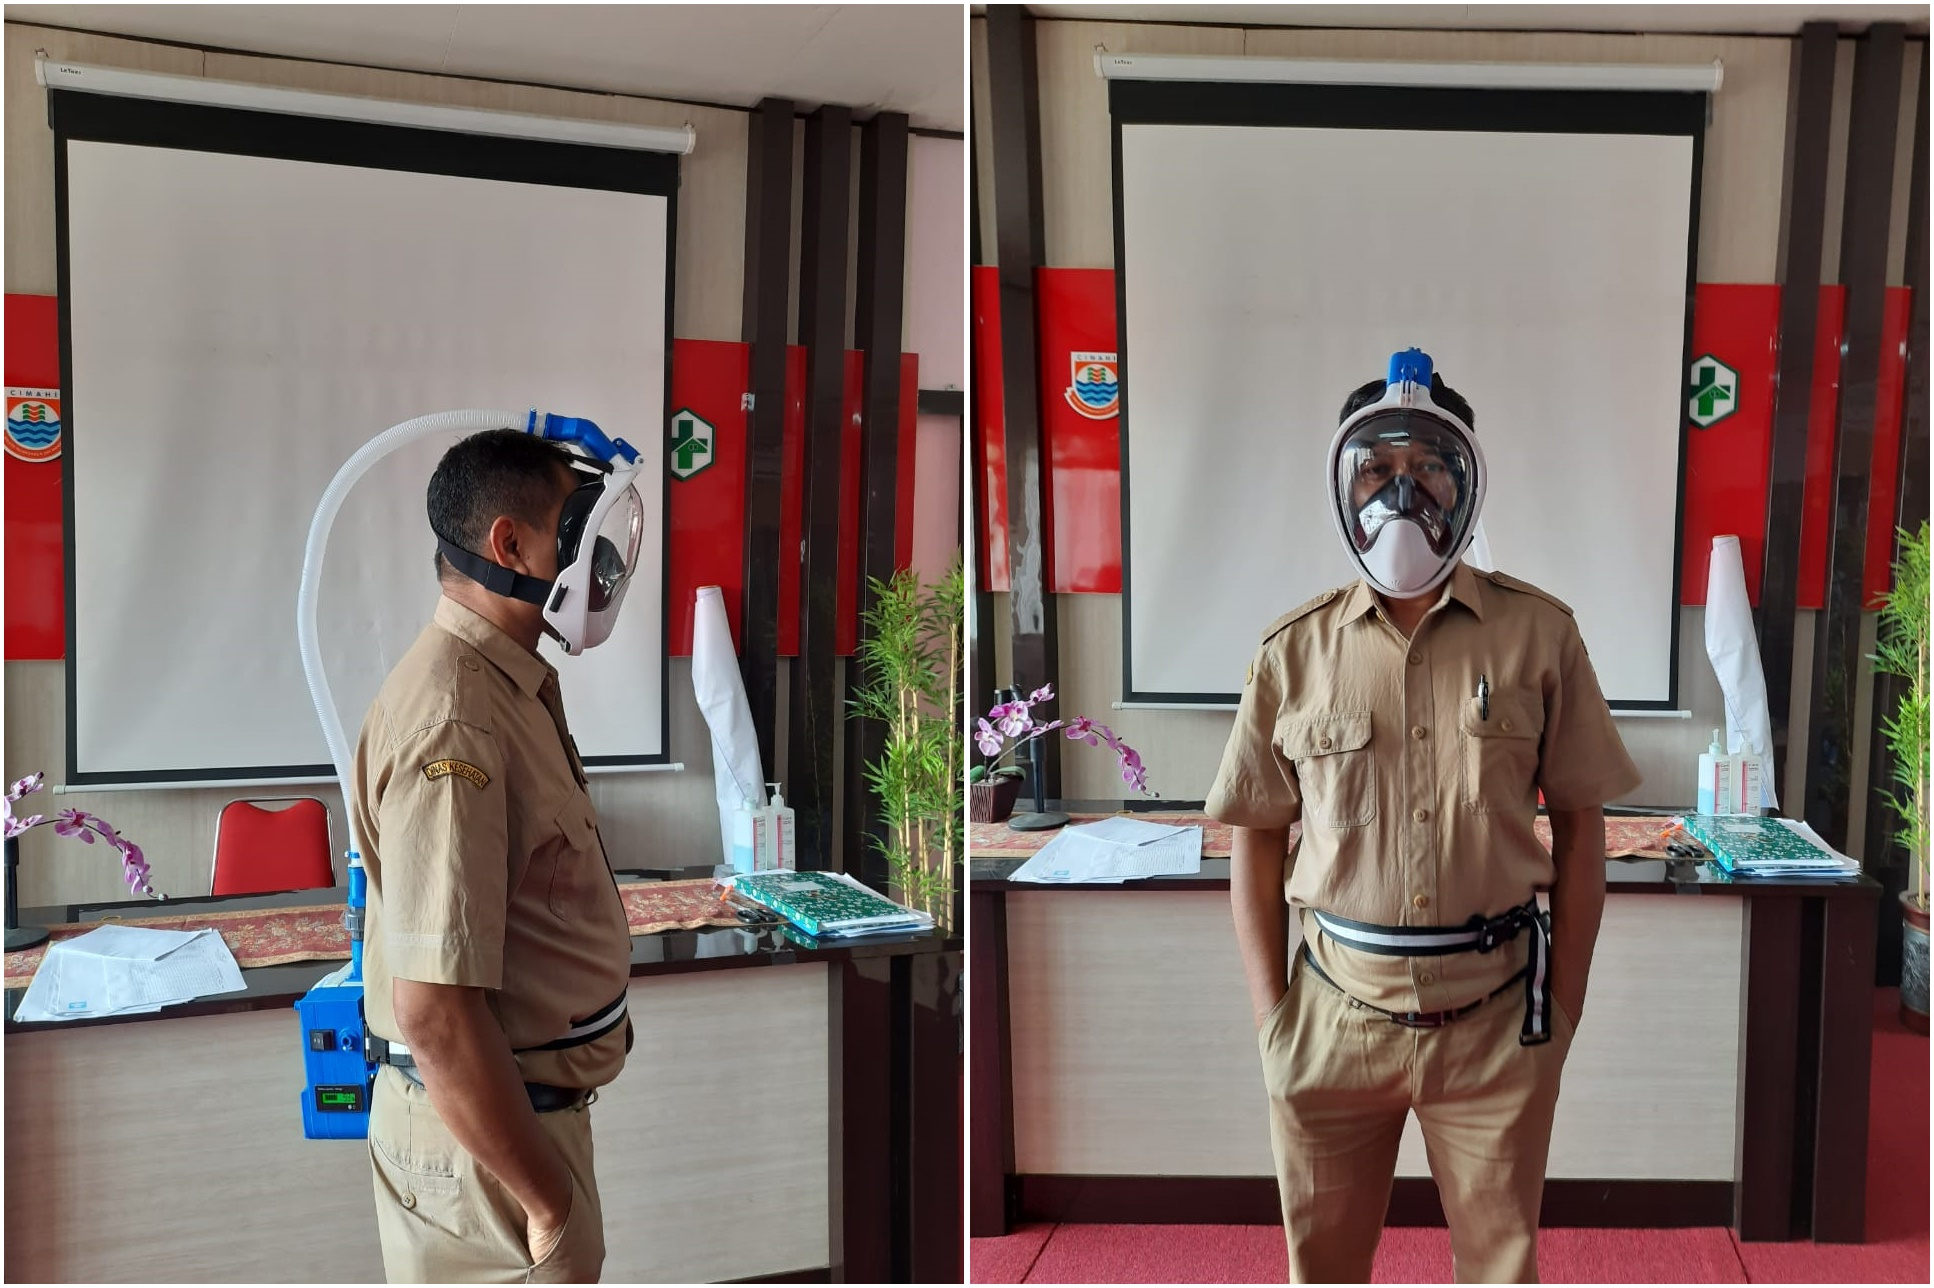 3 in 1 Face Protector, ITB's Innovation in the Midst of COVID-19